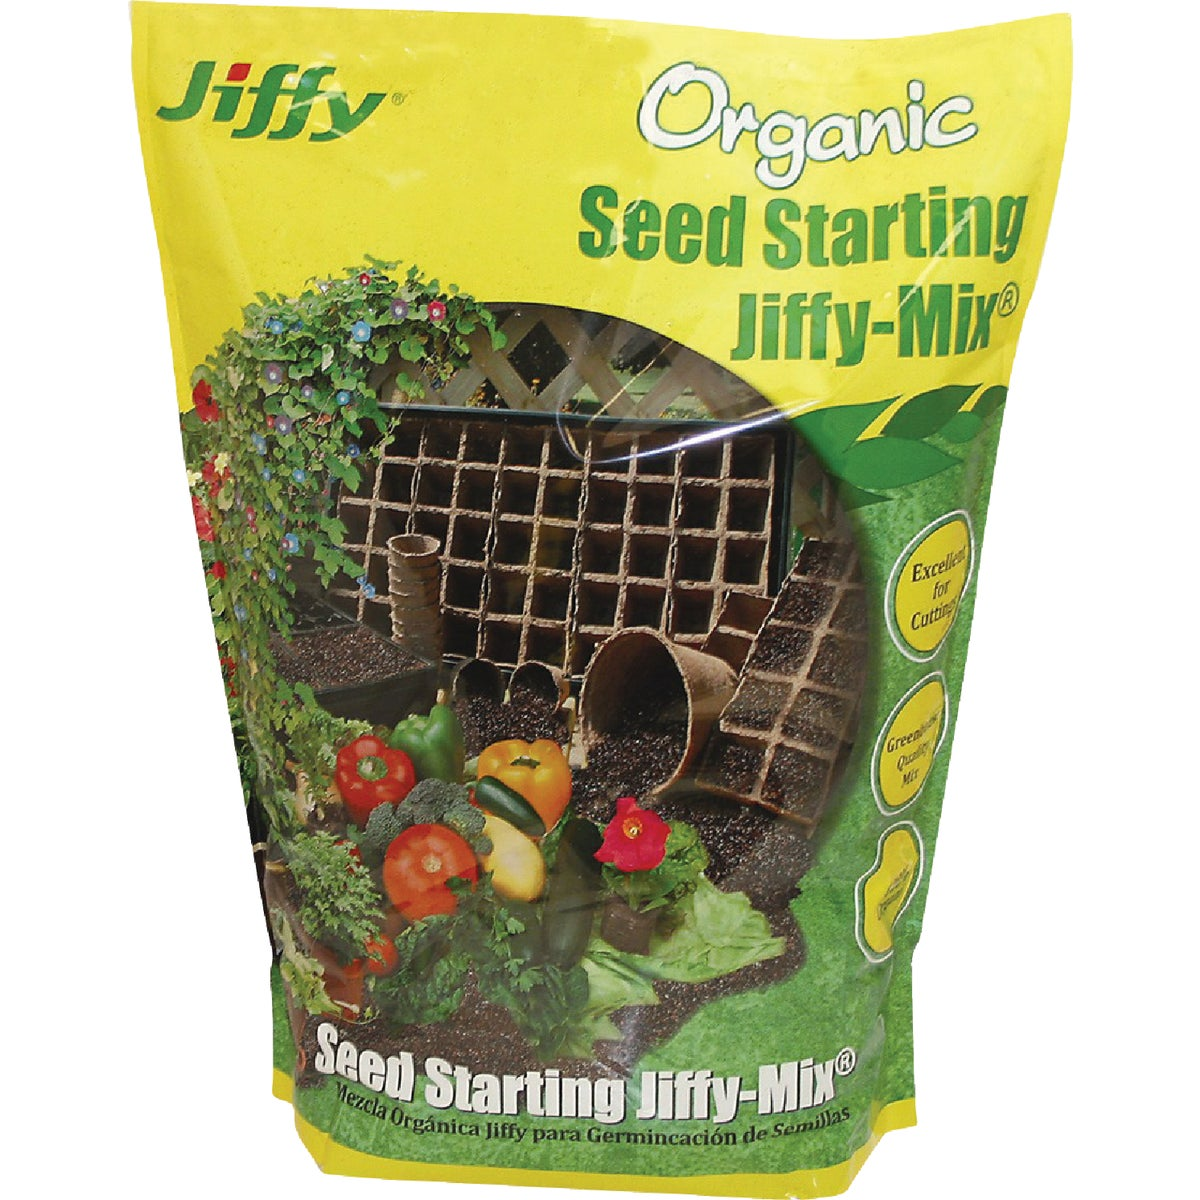 16QT ORG SEED START MIX - G316 by Plantation Products